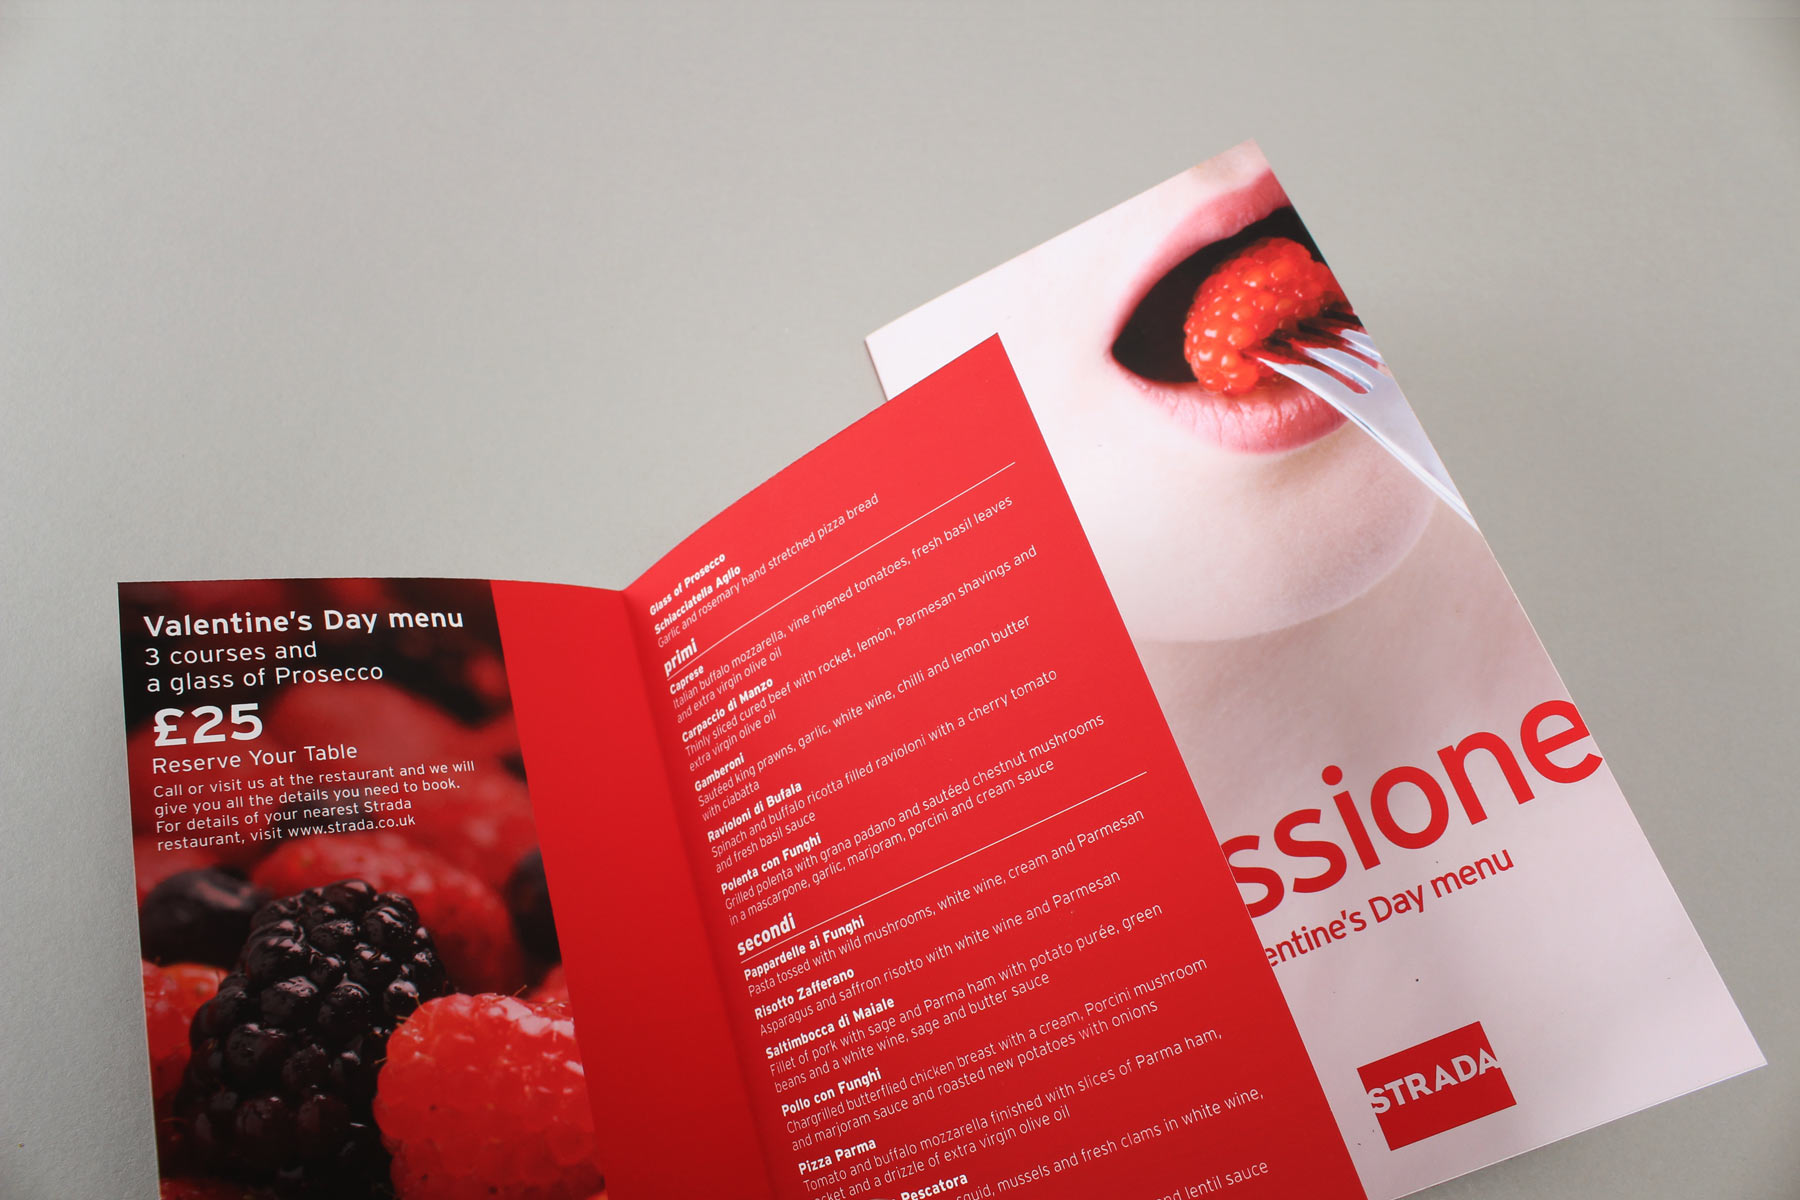 We supported the lead image with luscious fruit imagery, for an erotic and classy feel.